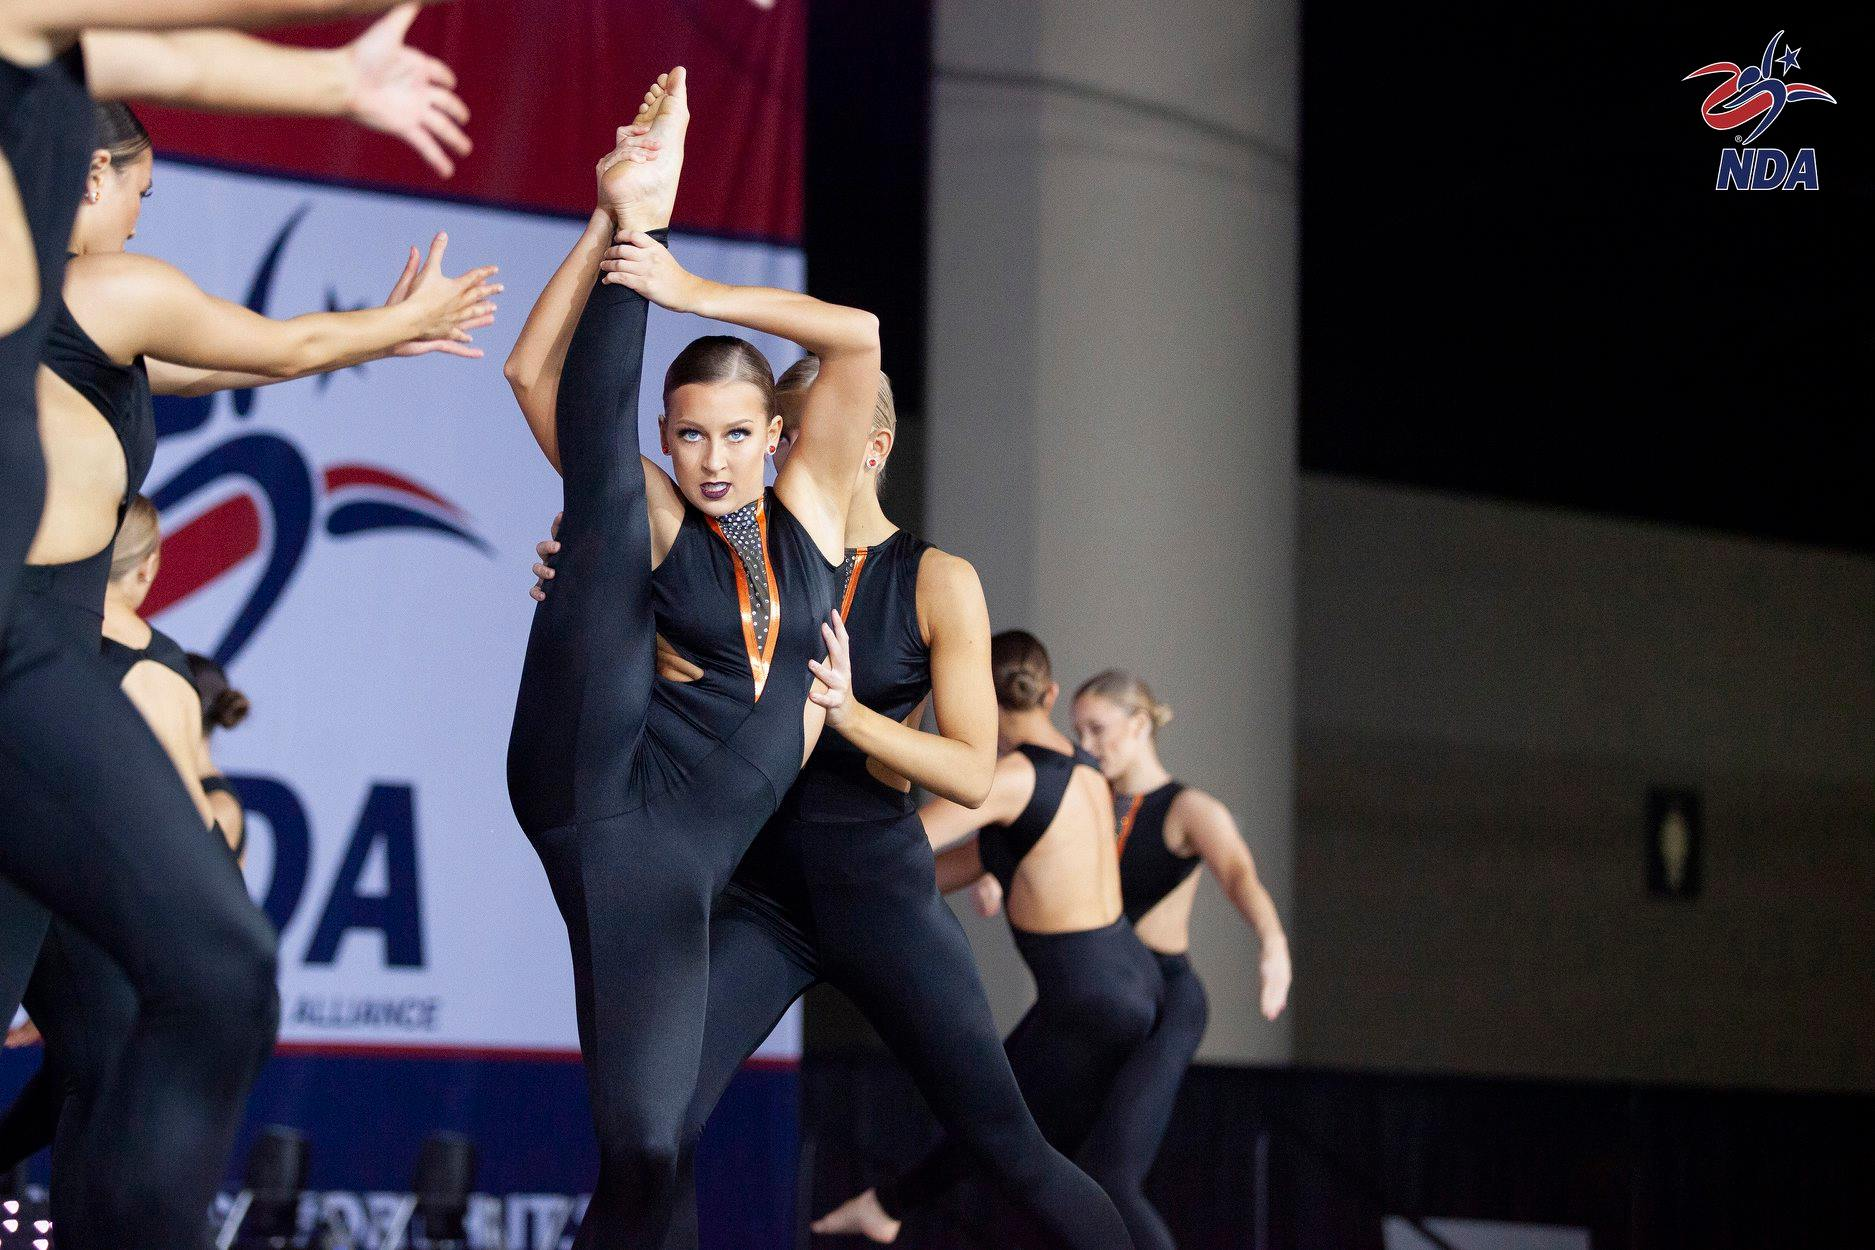 Boise State University Bronco Spirit jazz nda nationals